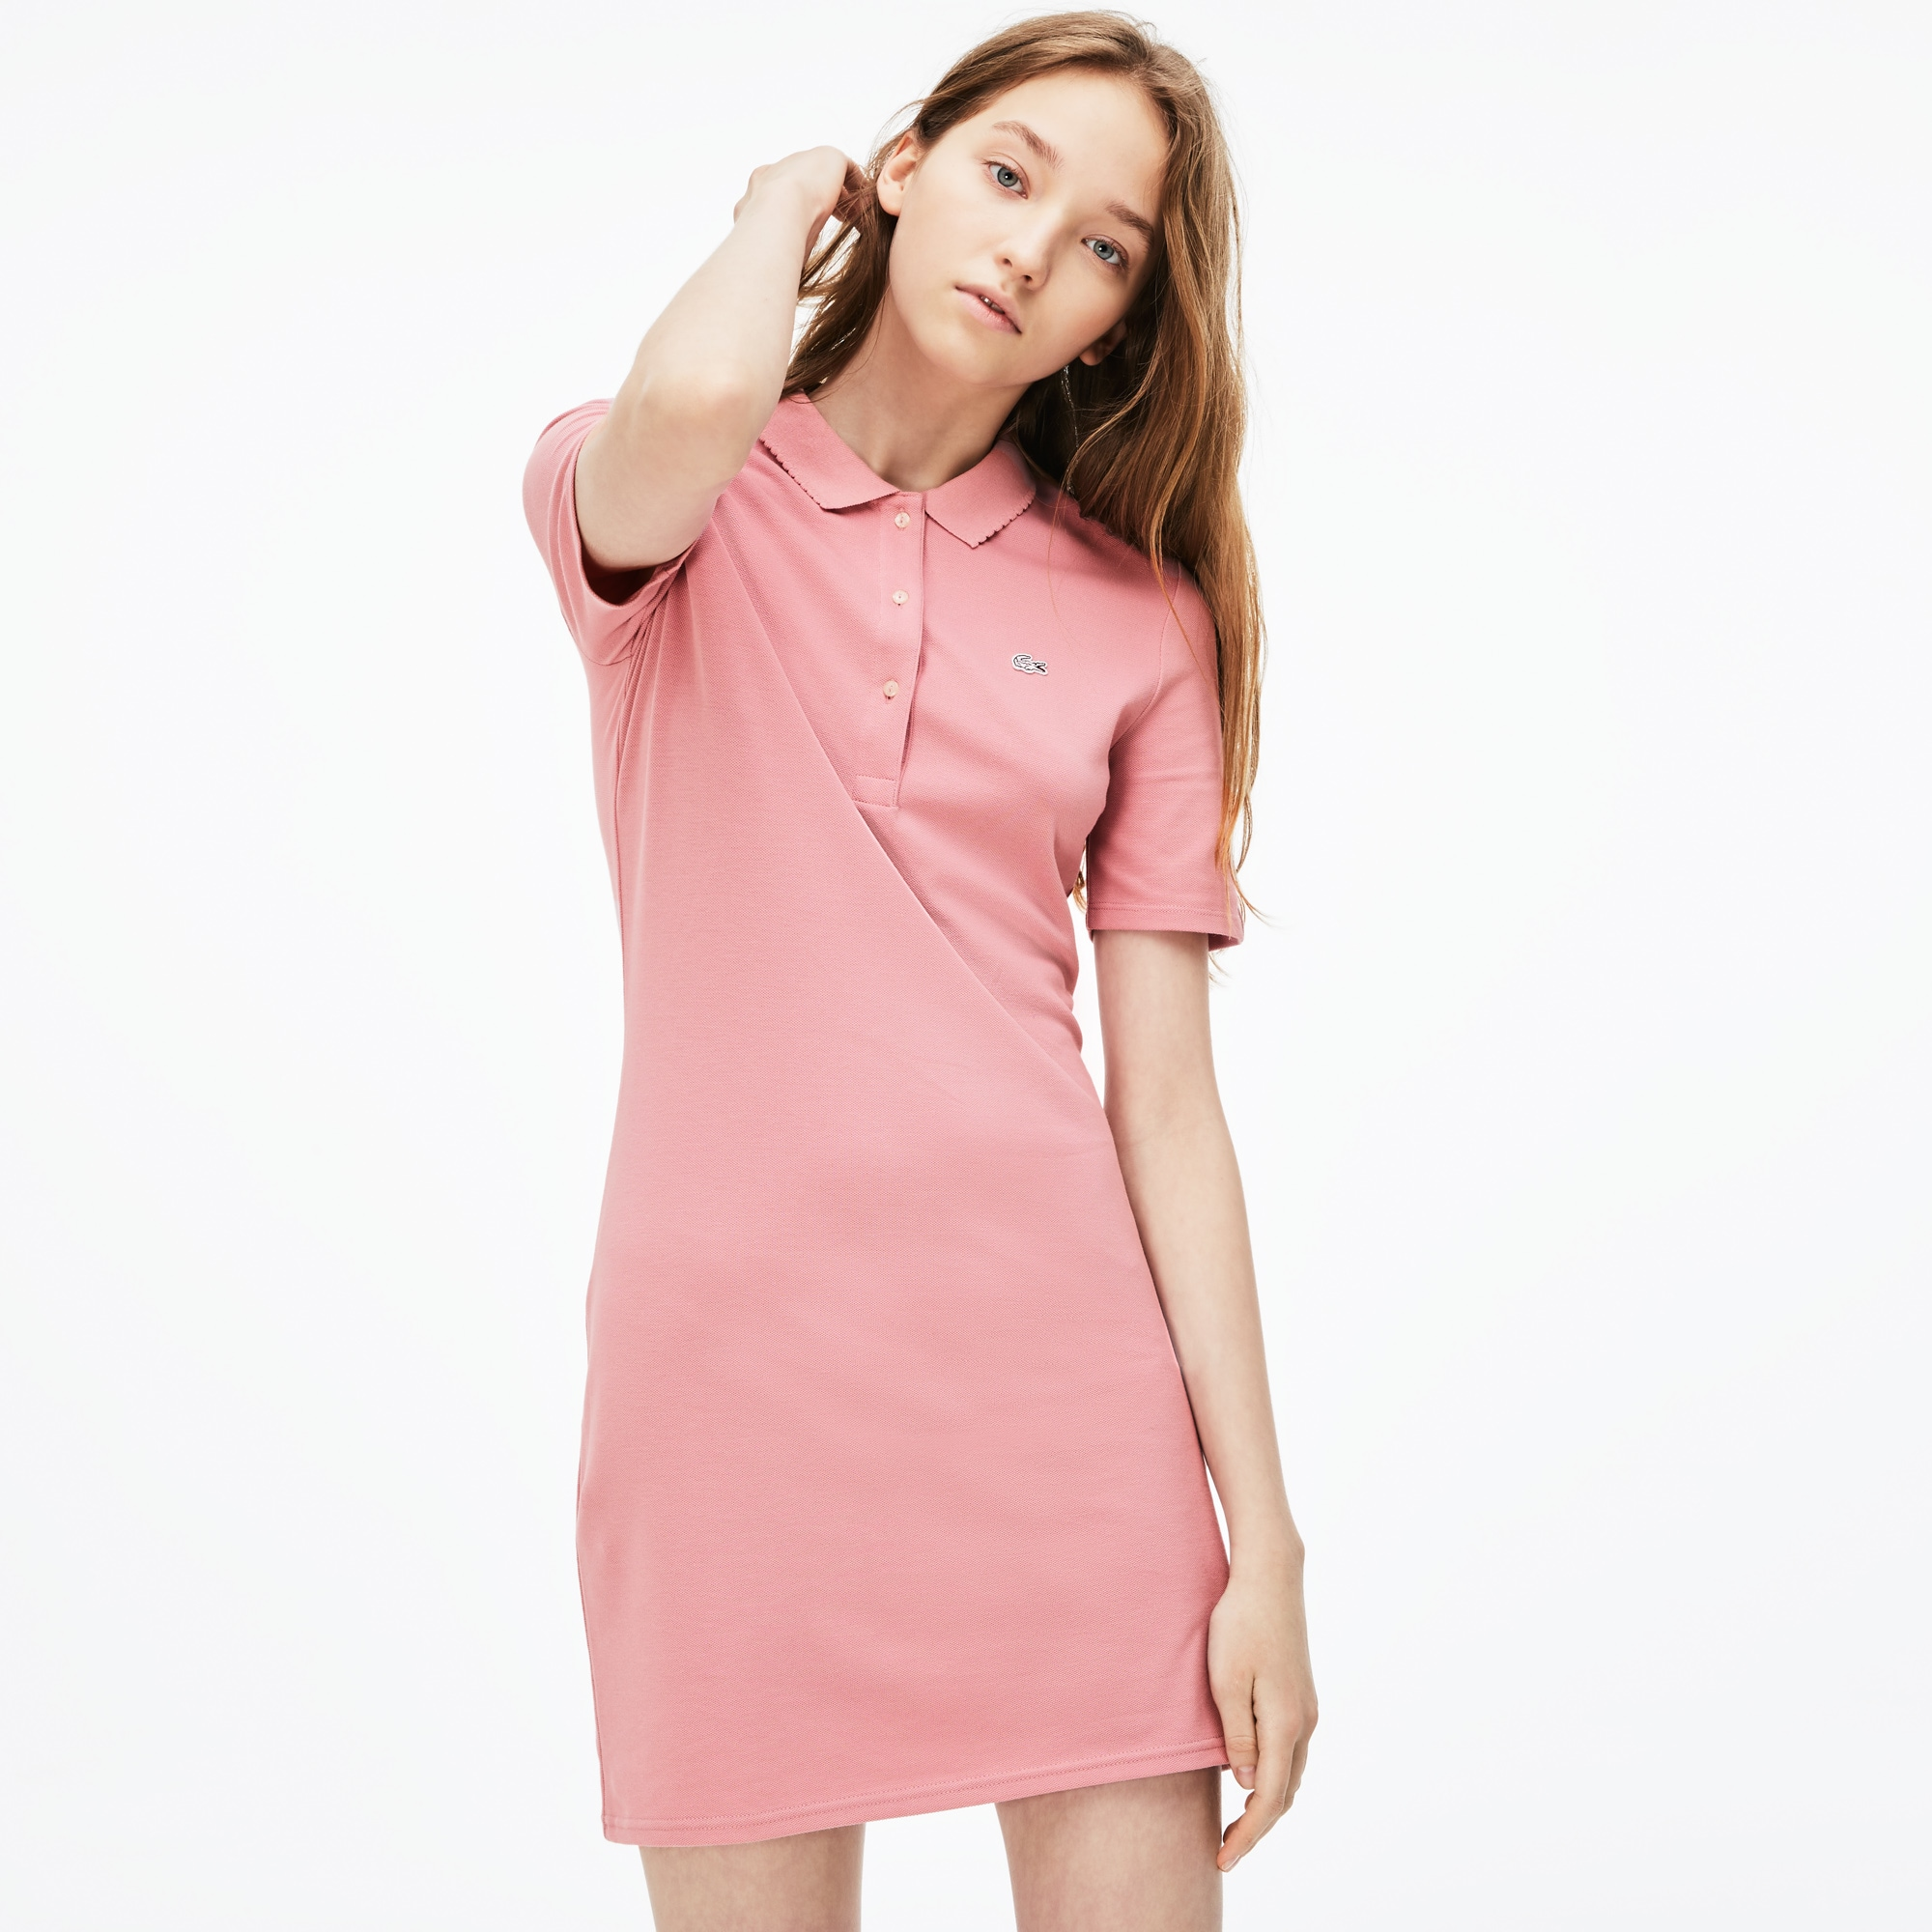 Women's Lacoste LIVE Stretch Petit Piqué Polo Dress